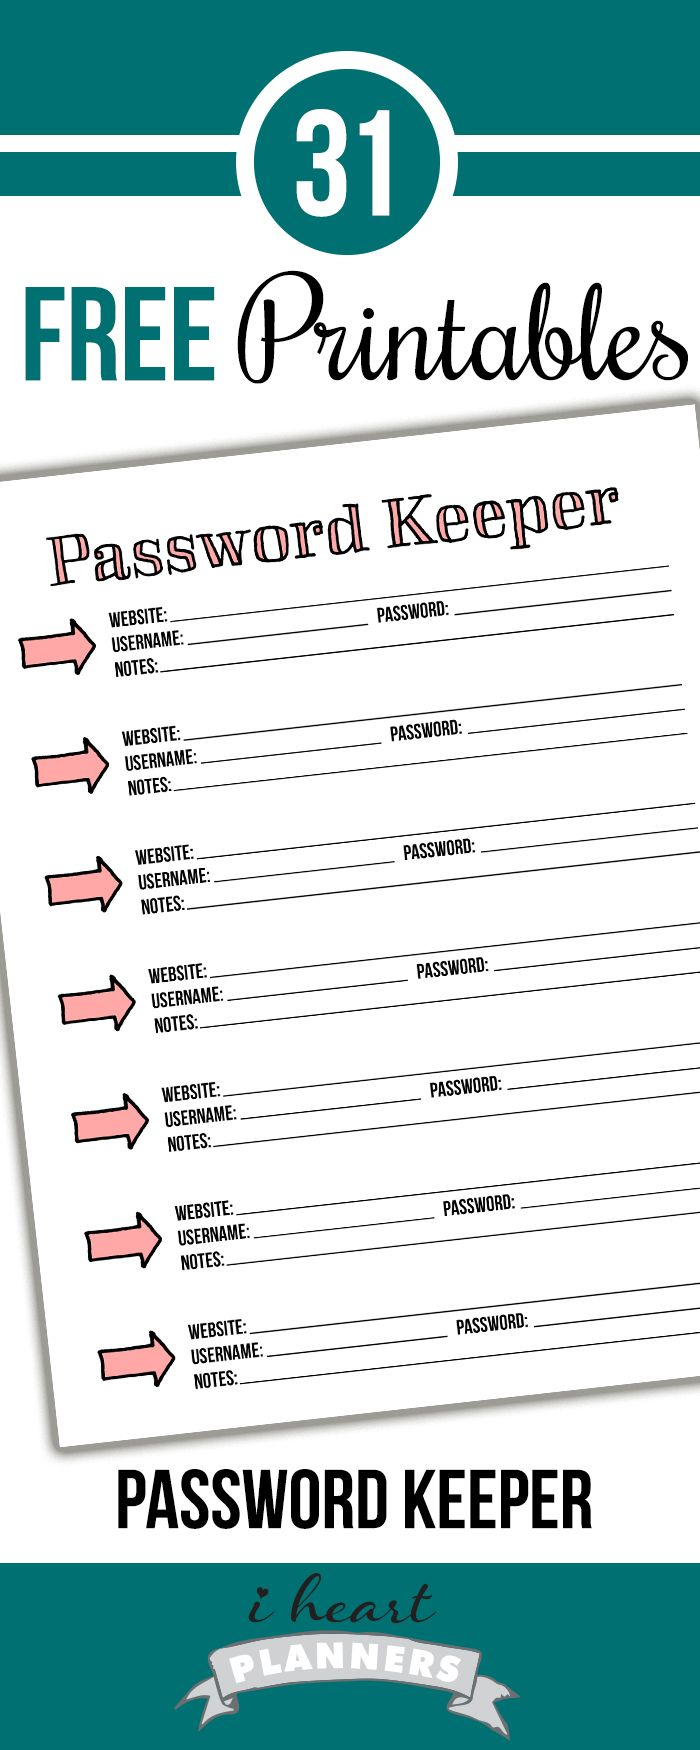 Welcome to Day 6 of the 31 days of free printables! Today's printable was requested by several of you who wanted a place to keep track of your passwords and log in information. If you are anything like me, you have a lot of passwords to remember. Click below to download the pdf version of this …